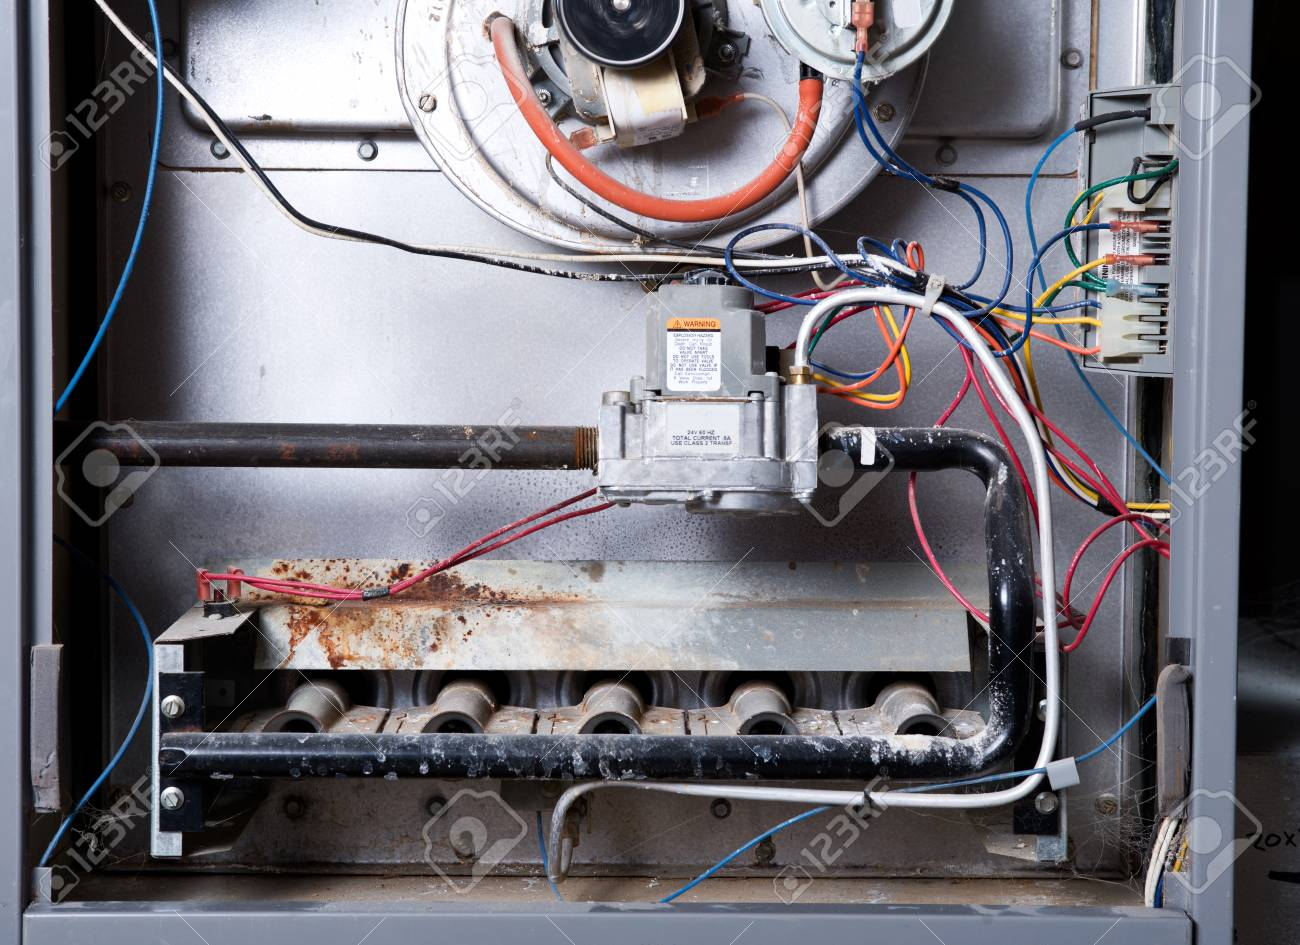 Open home furnace just ready for cleaning and repair - 97774587